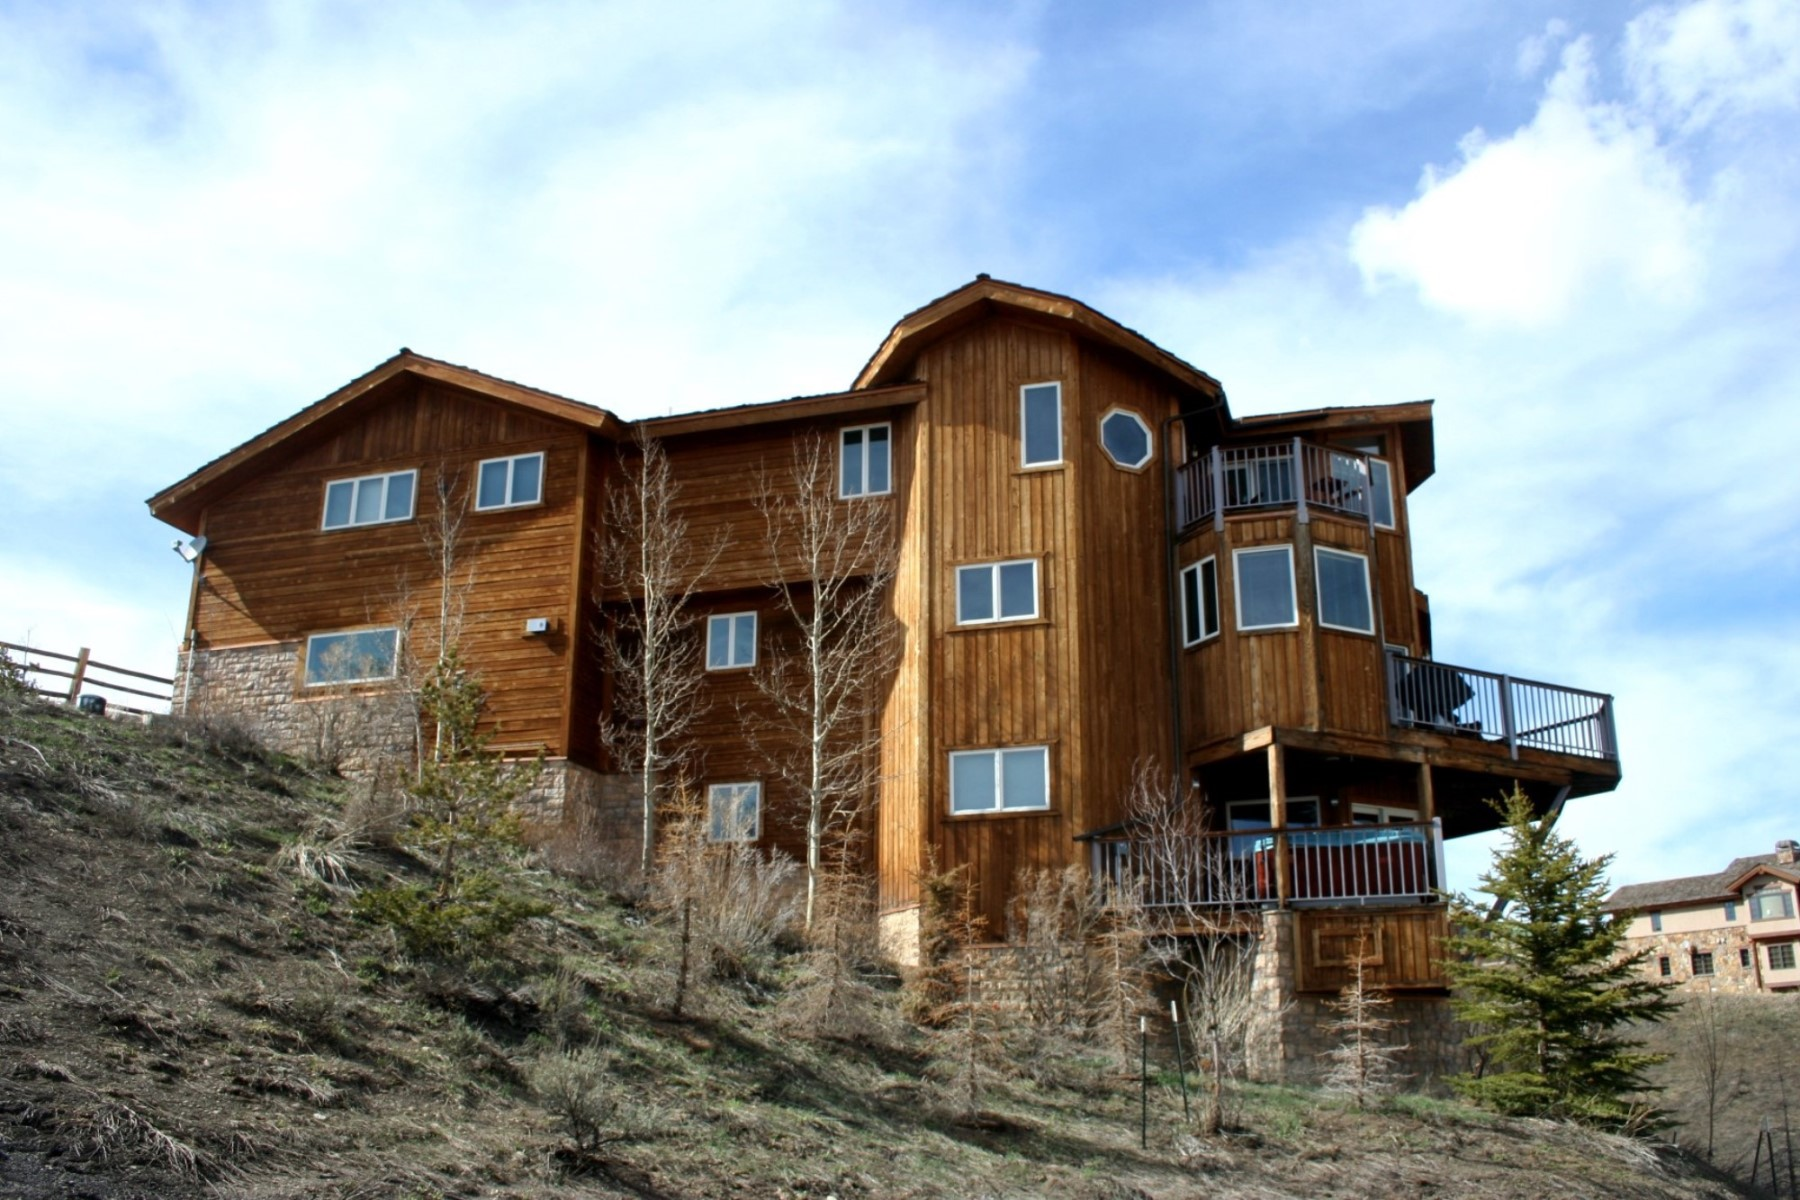 Single Family Home for Sale at Inspiring Mountain Home 18 Buttercup Lane Mount Crested Butte, Colorado, 81225 United States